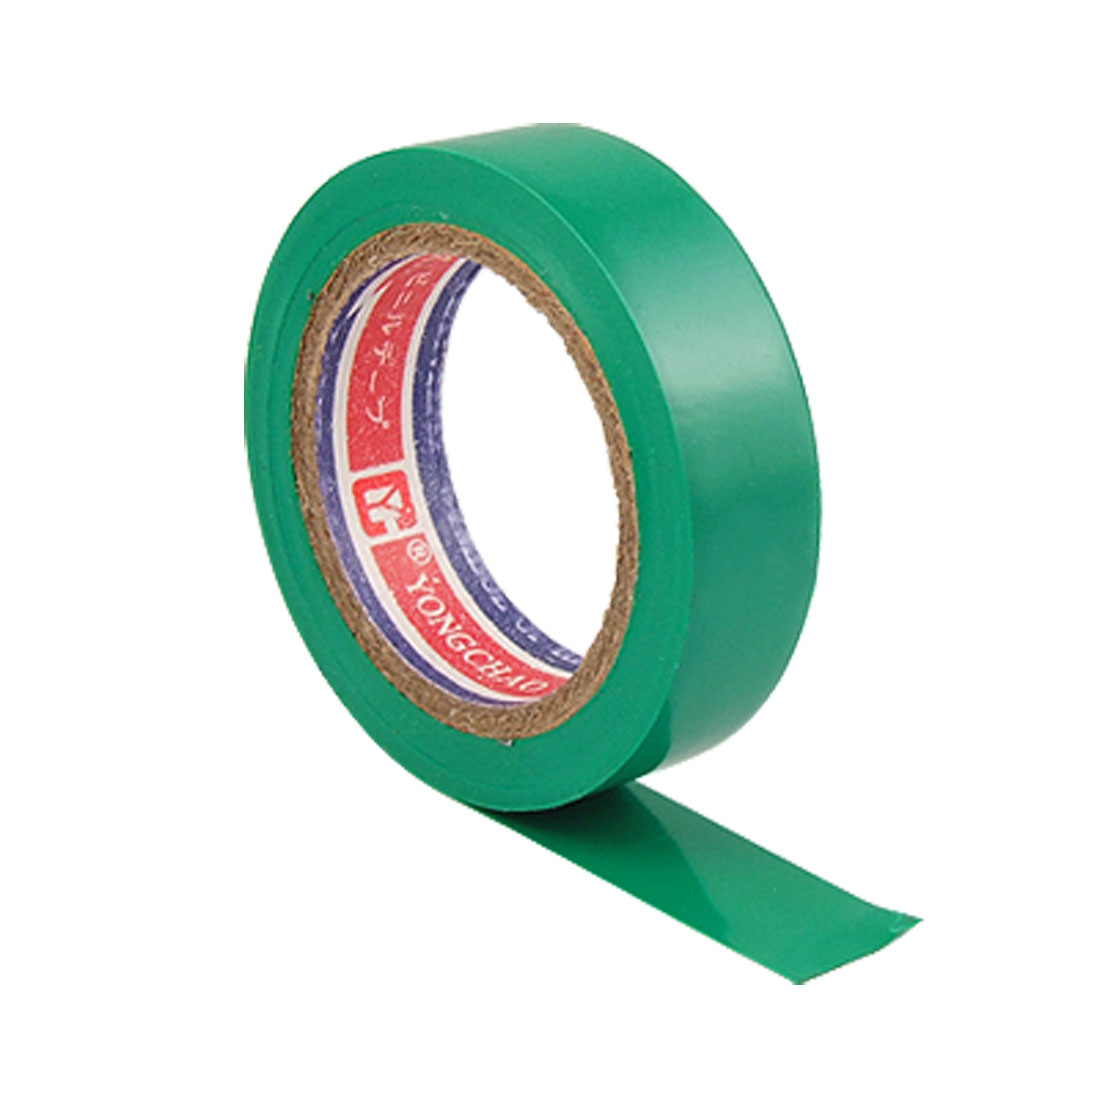 Cable Wrapping Plastic Green Adhesive Insulation Tape 10M